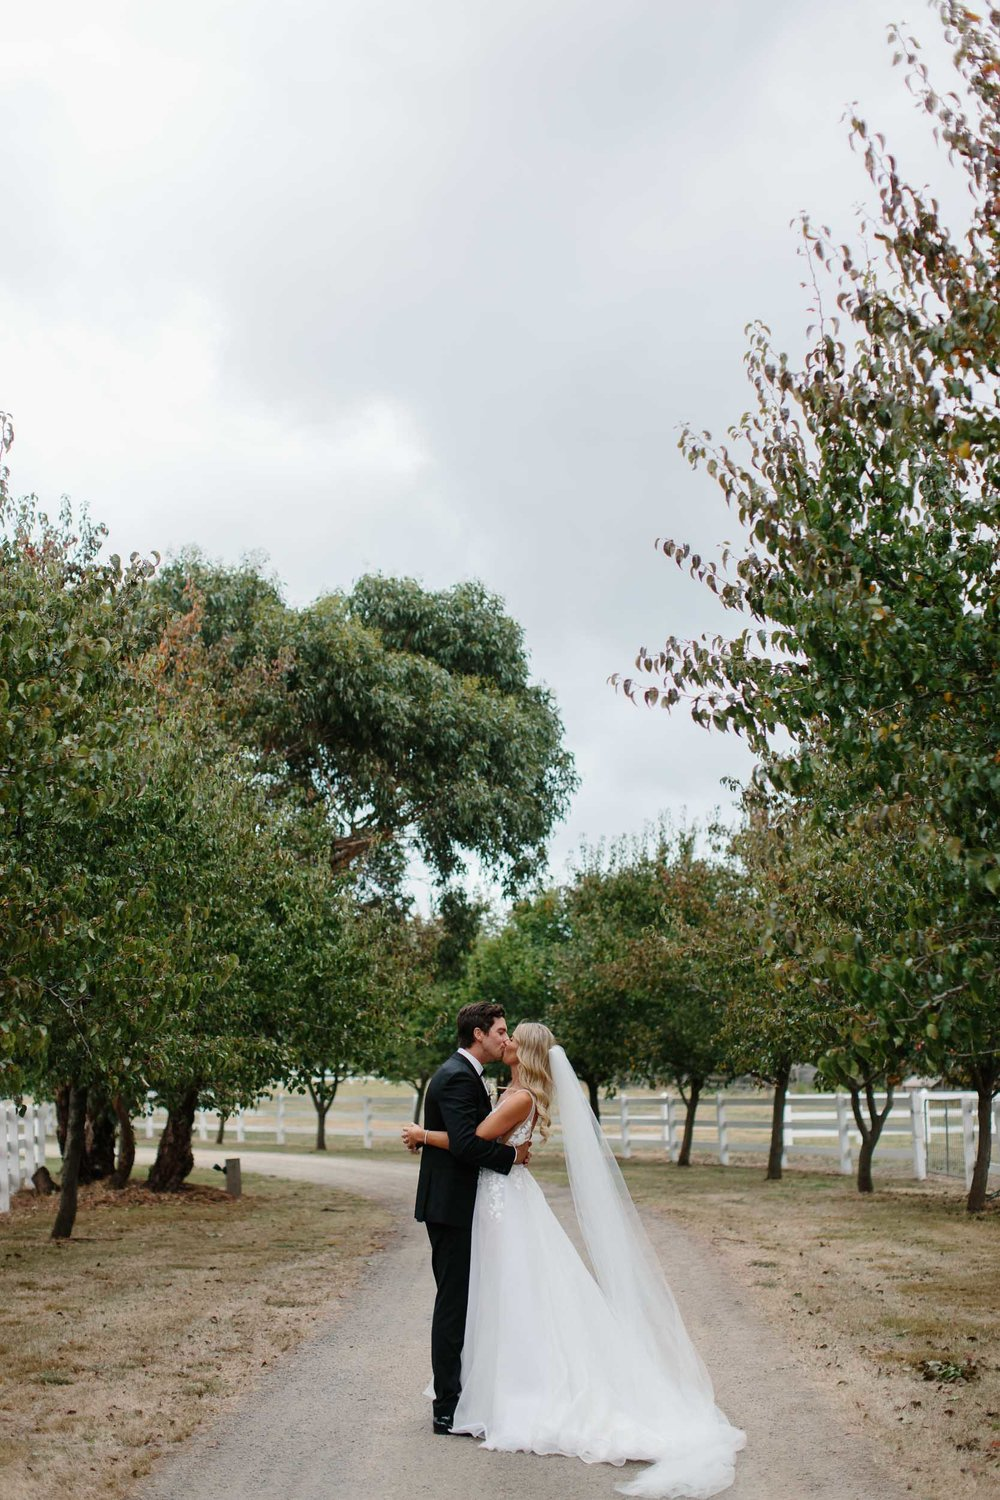 Kas-Richards-Mornington-Peninsula-Private-Property-Wedding-Marianna-Hardwick-Gown-492.jpg